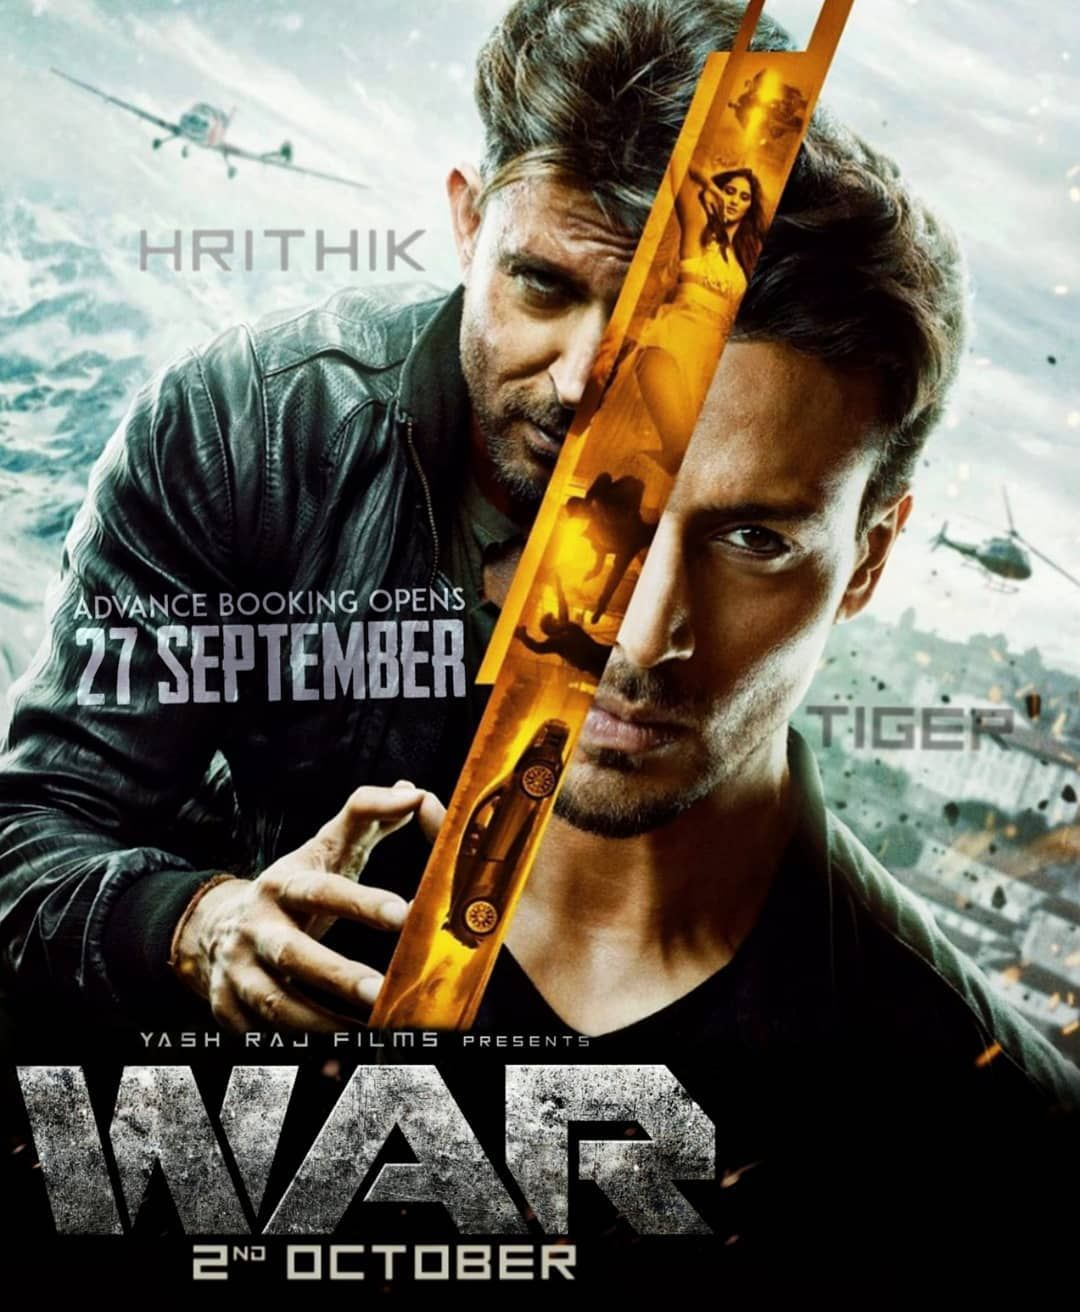 TeamHrithik and TeamTiger from 27th September advance